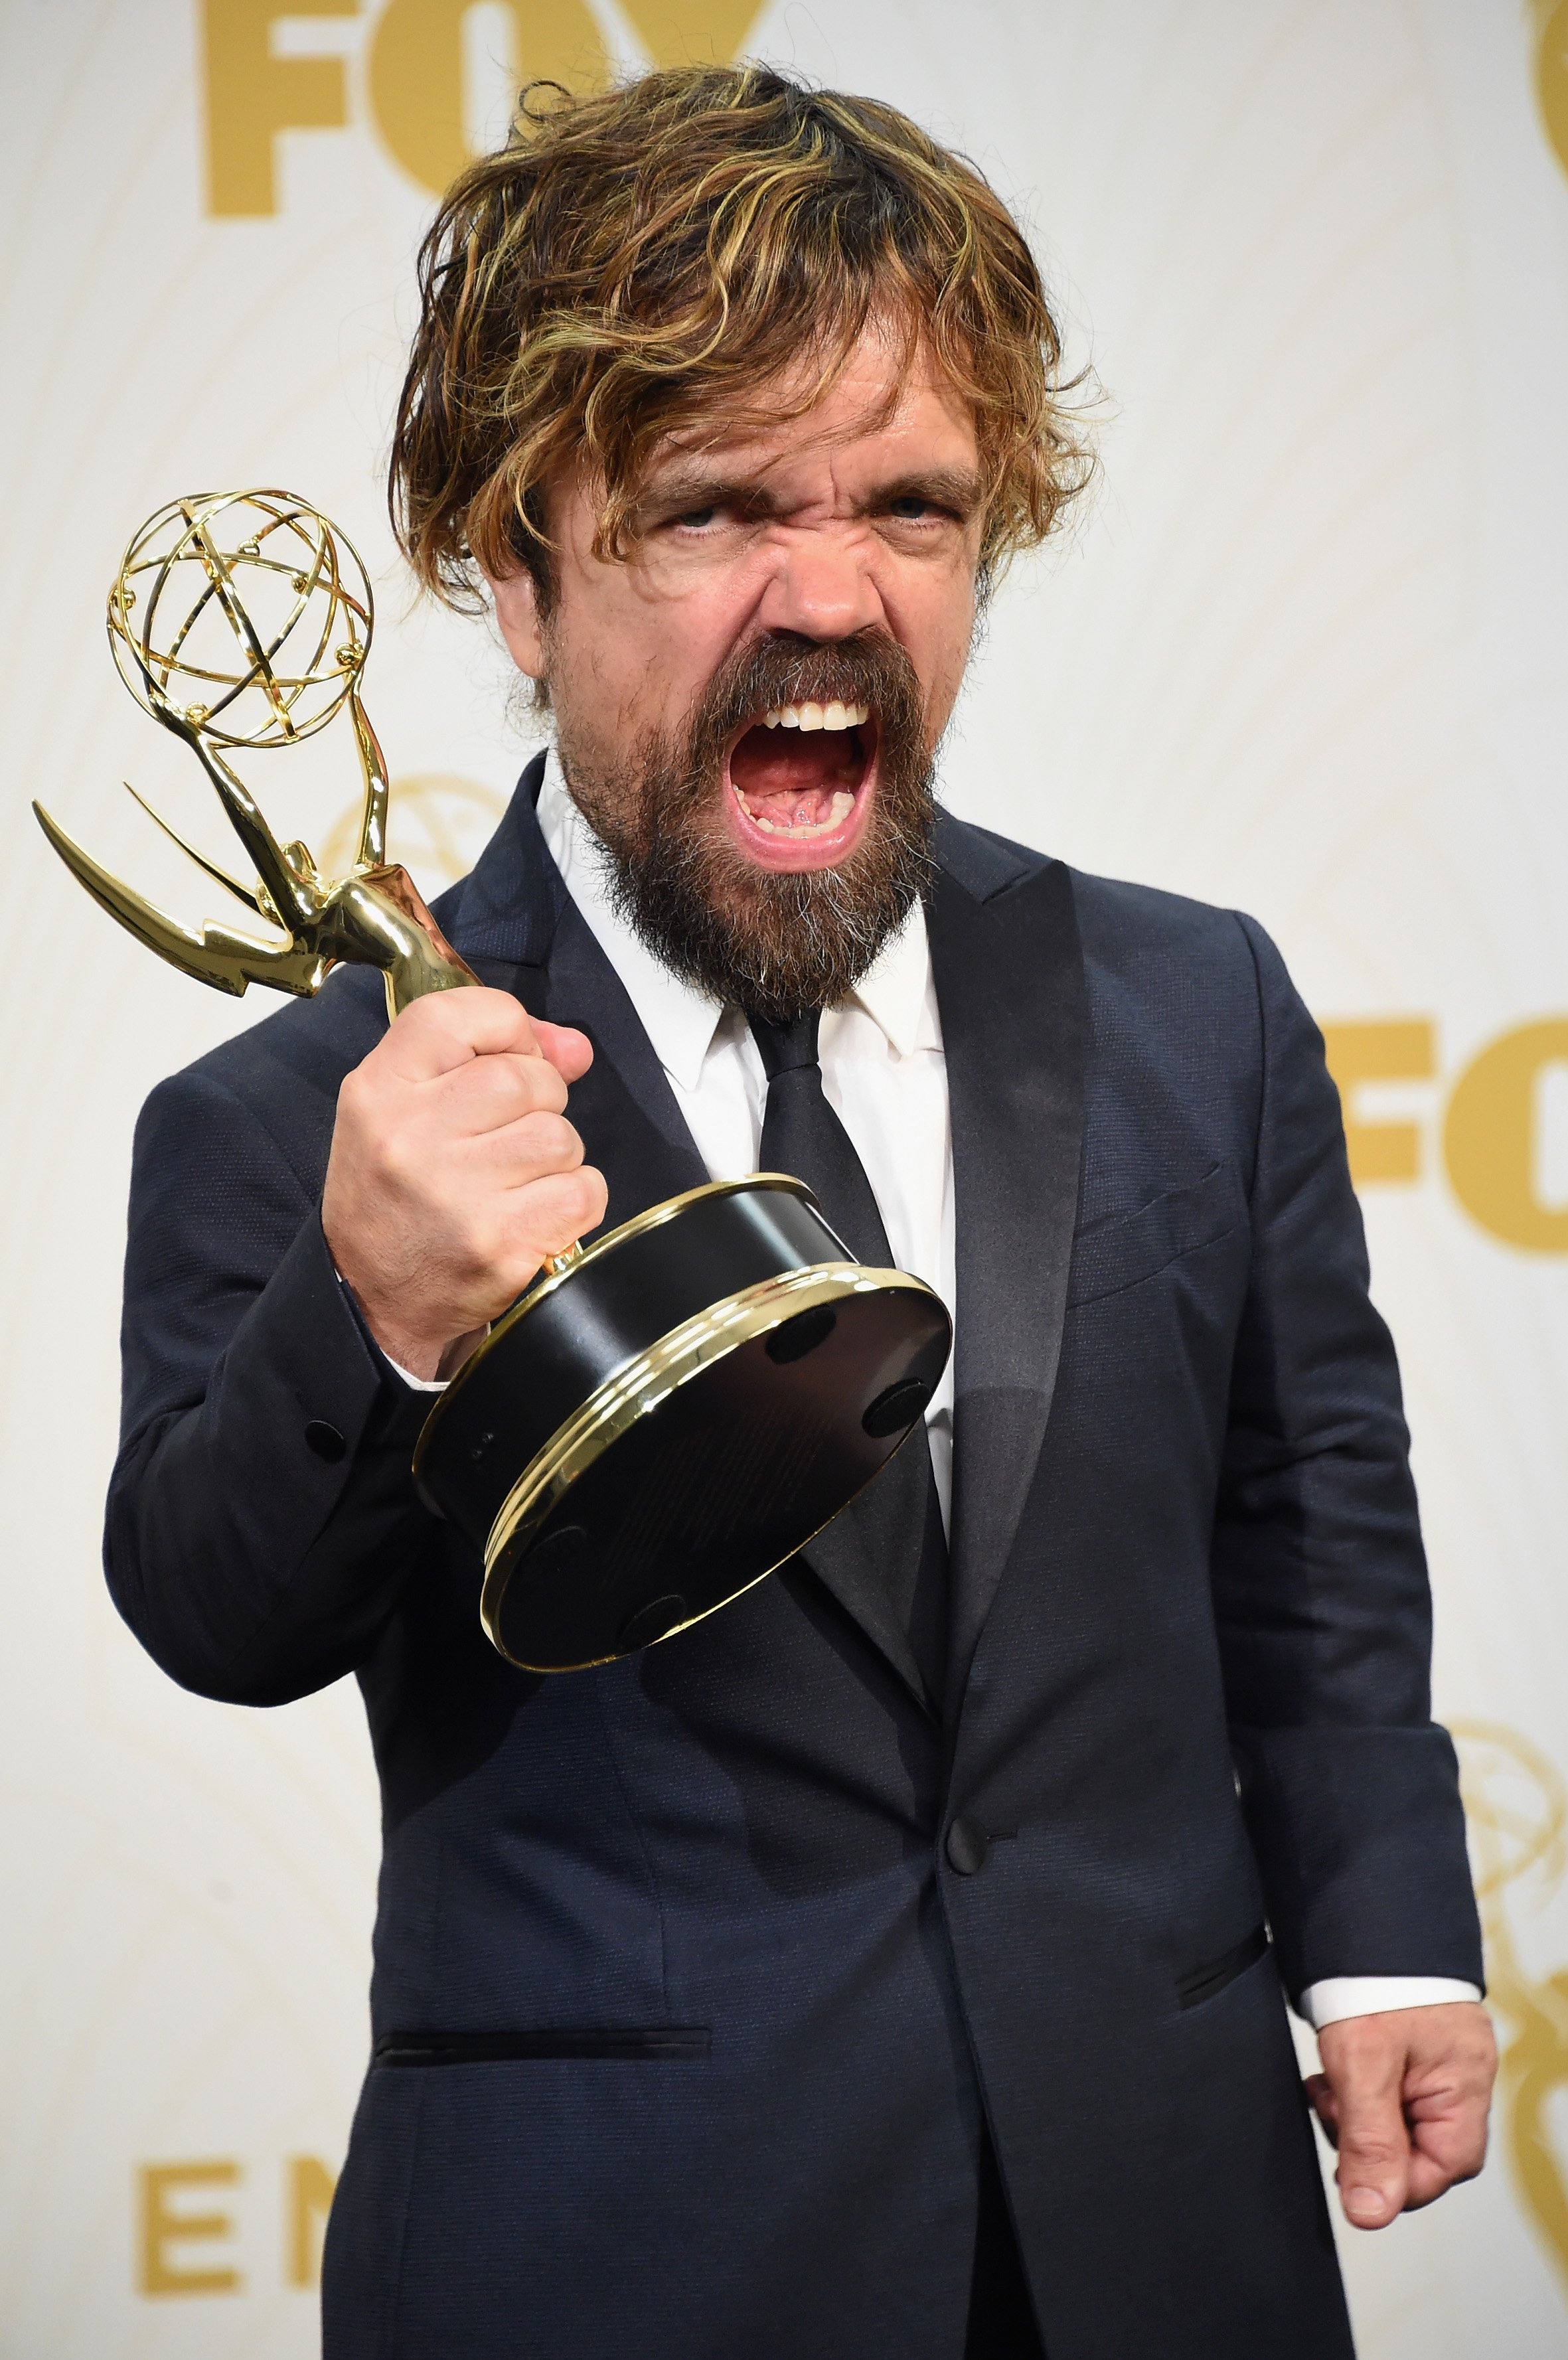 Peter Dinklage on September 20, 2015 in Los Angeles, California | Source: Getty Images